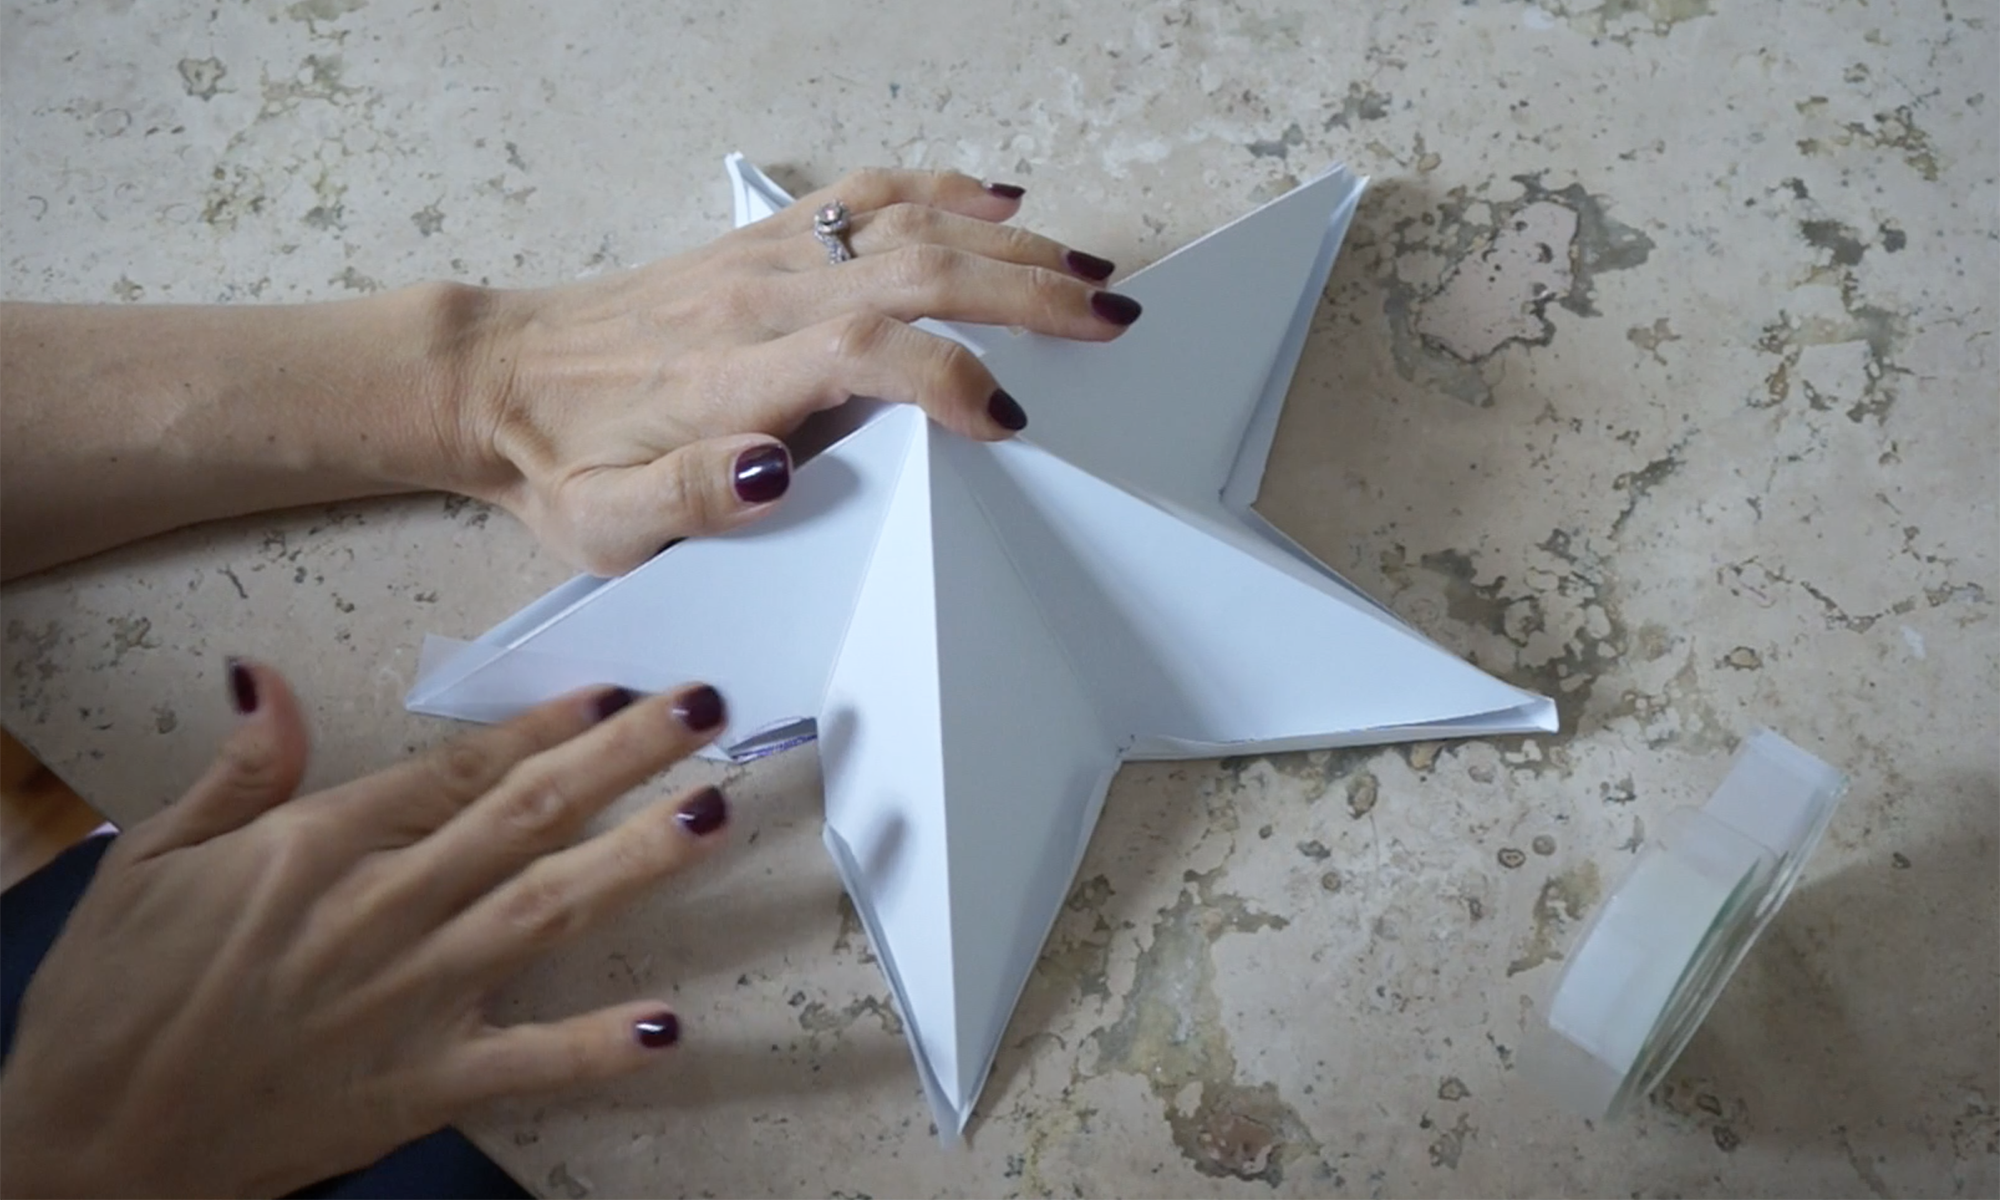 fold the edges over and tape the two pieces together /  pega las hojas de cartulina con cinta